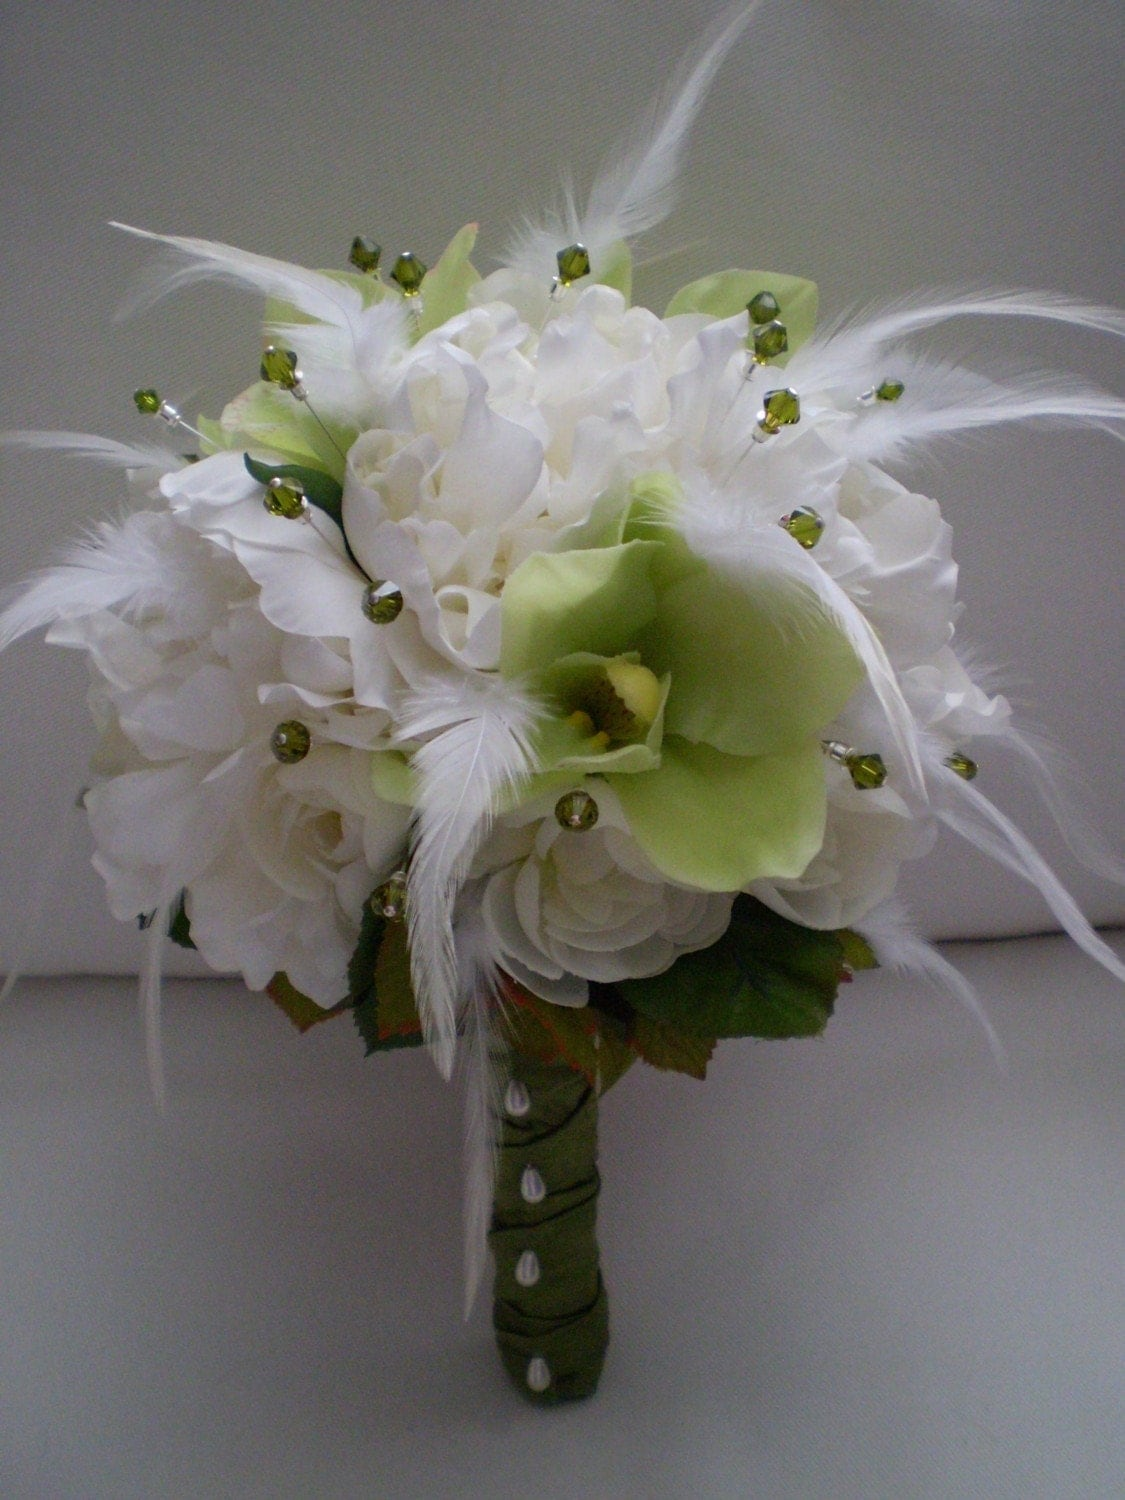 Wedding Bouquets With Feathers And Crystals : Limecello wedding bouquet with feathers and crystals by